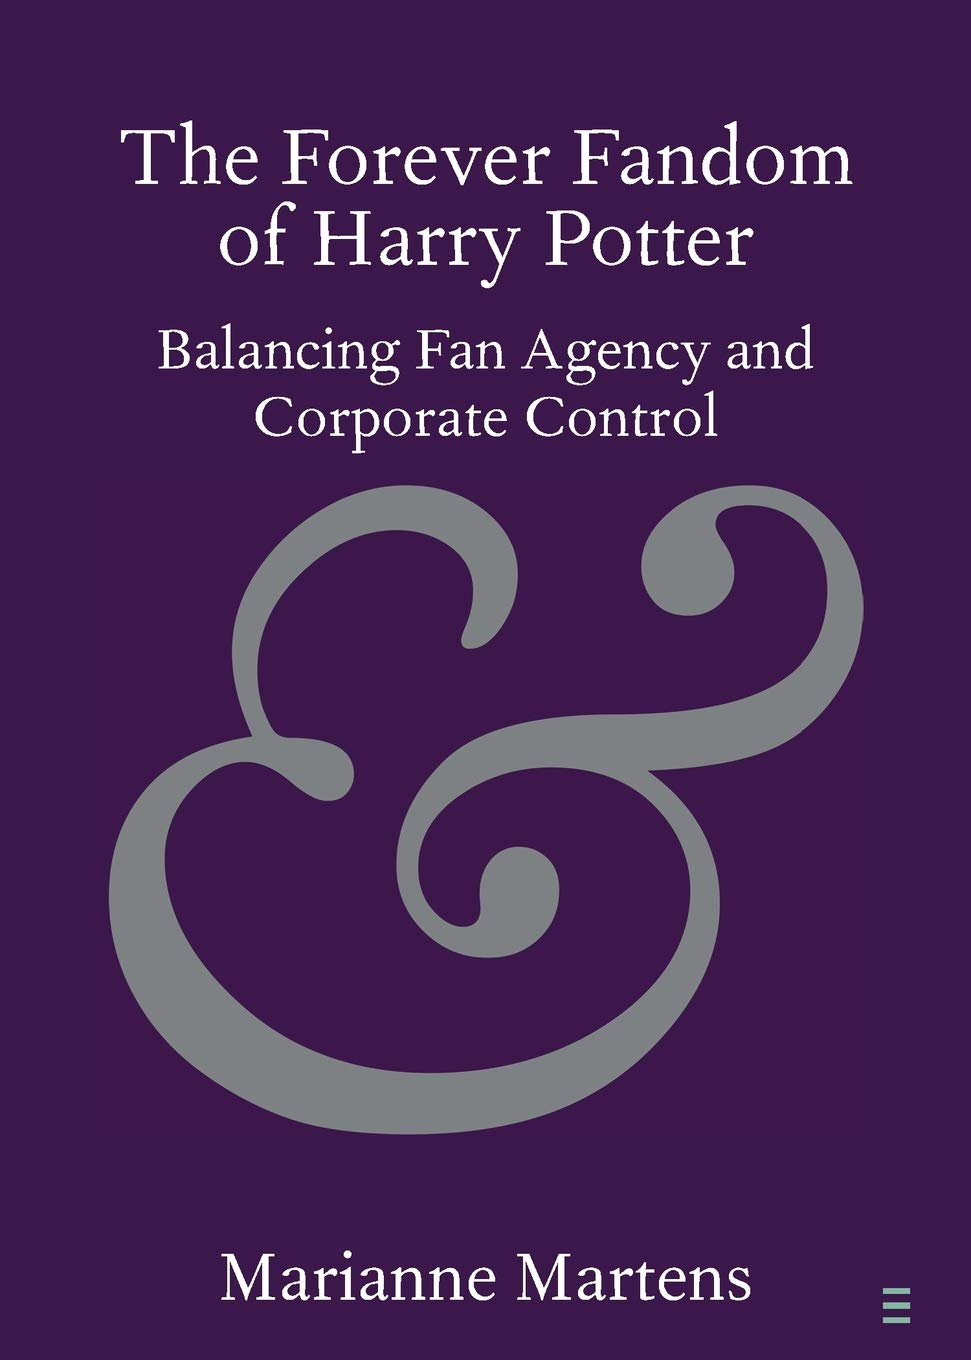 Cover of The Forever Fandom of Harry Potter